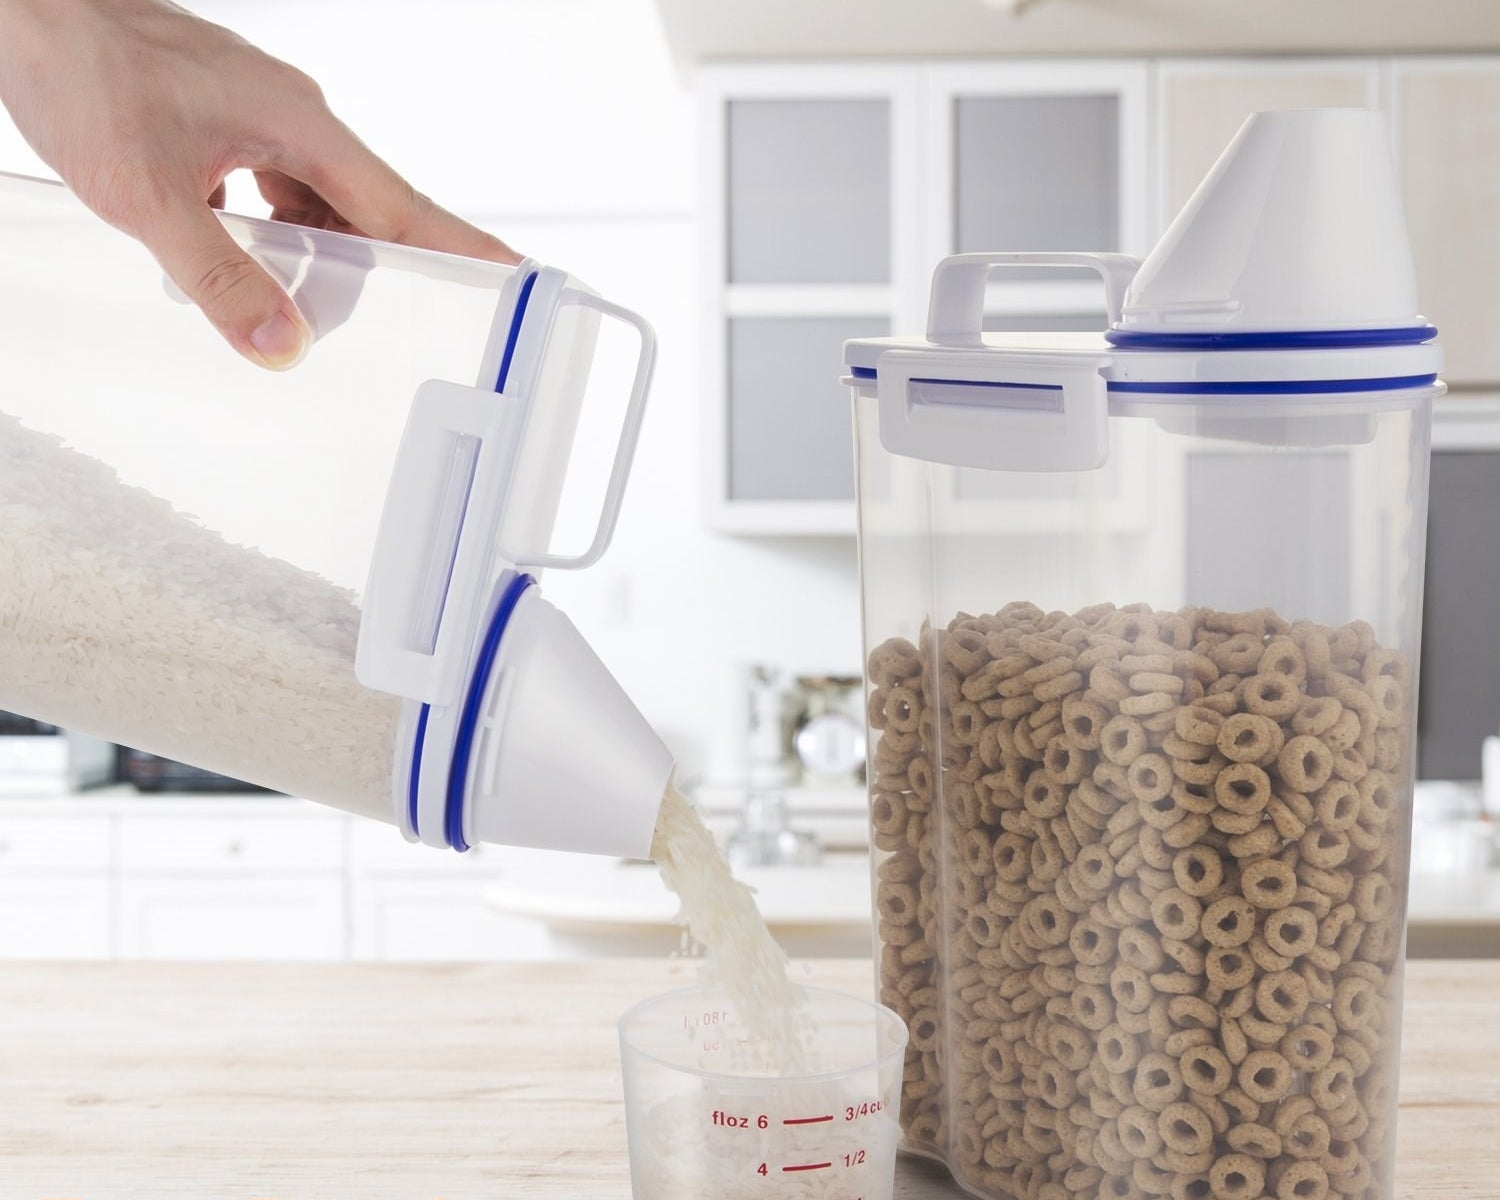 A hand pours rice out of the rectangular, handled container into a measuring cup, with another container containing cheerios in the background